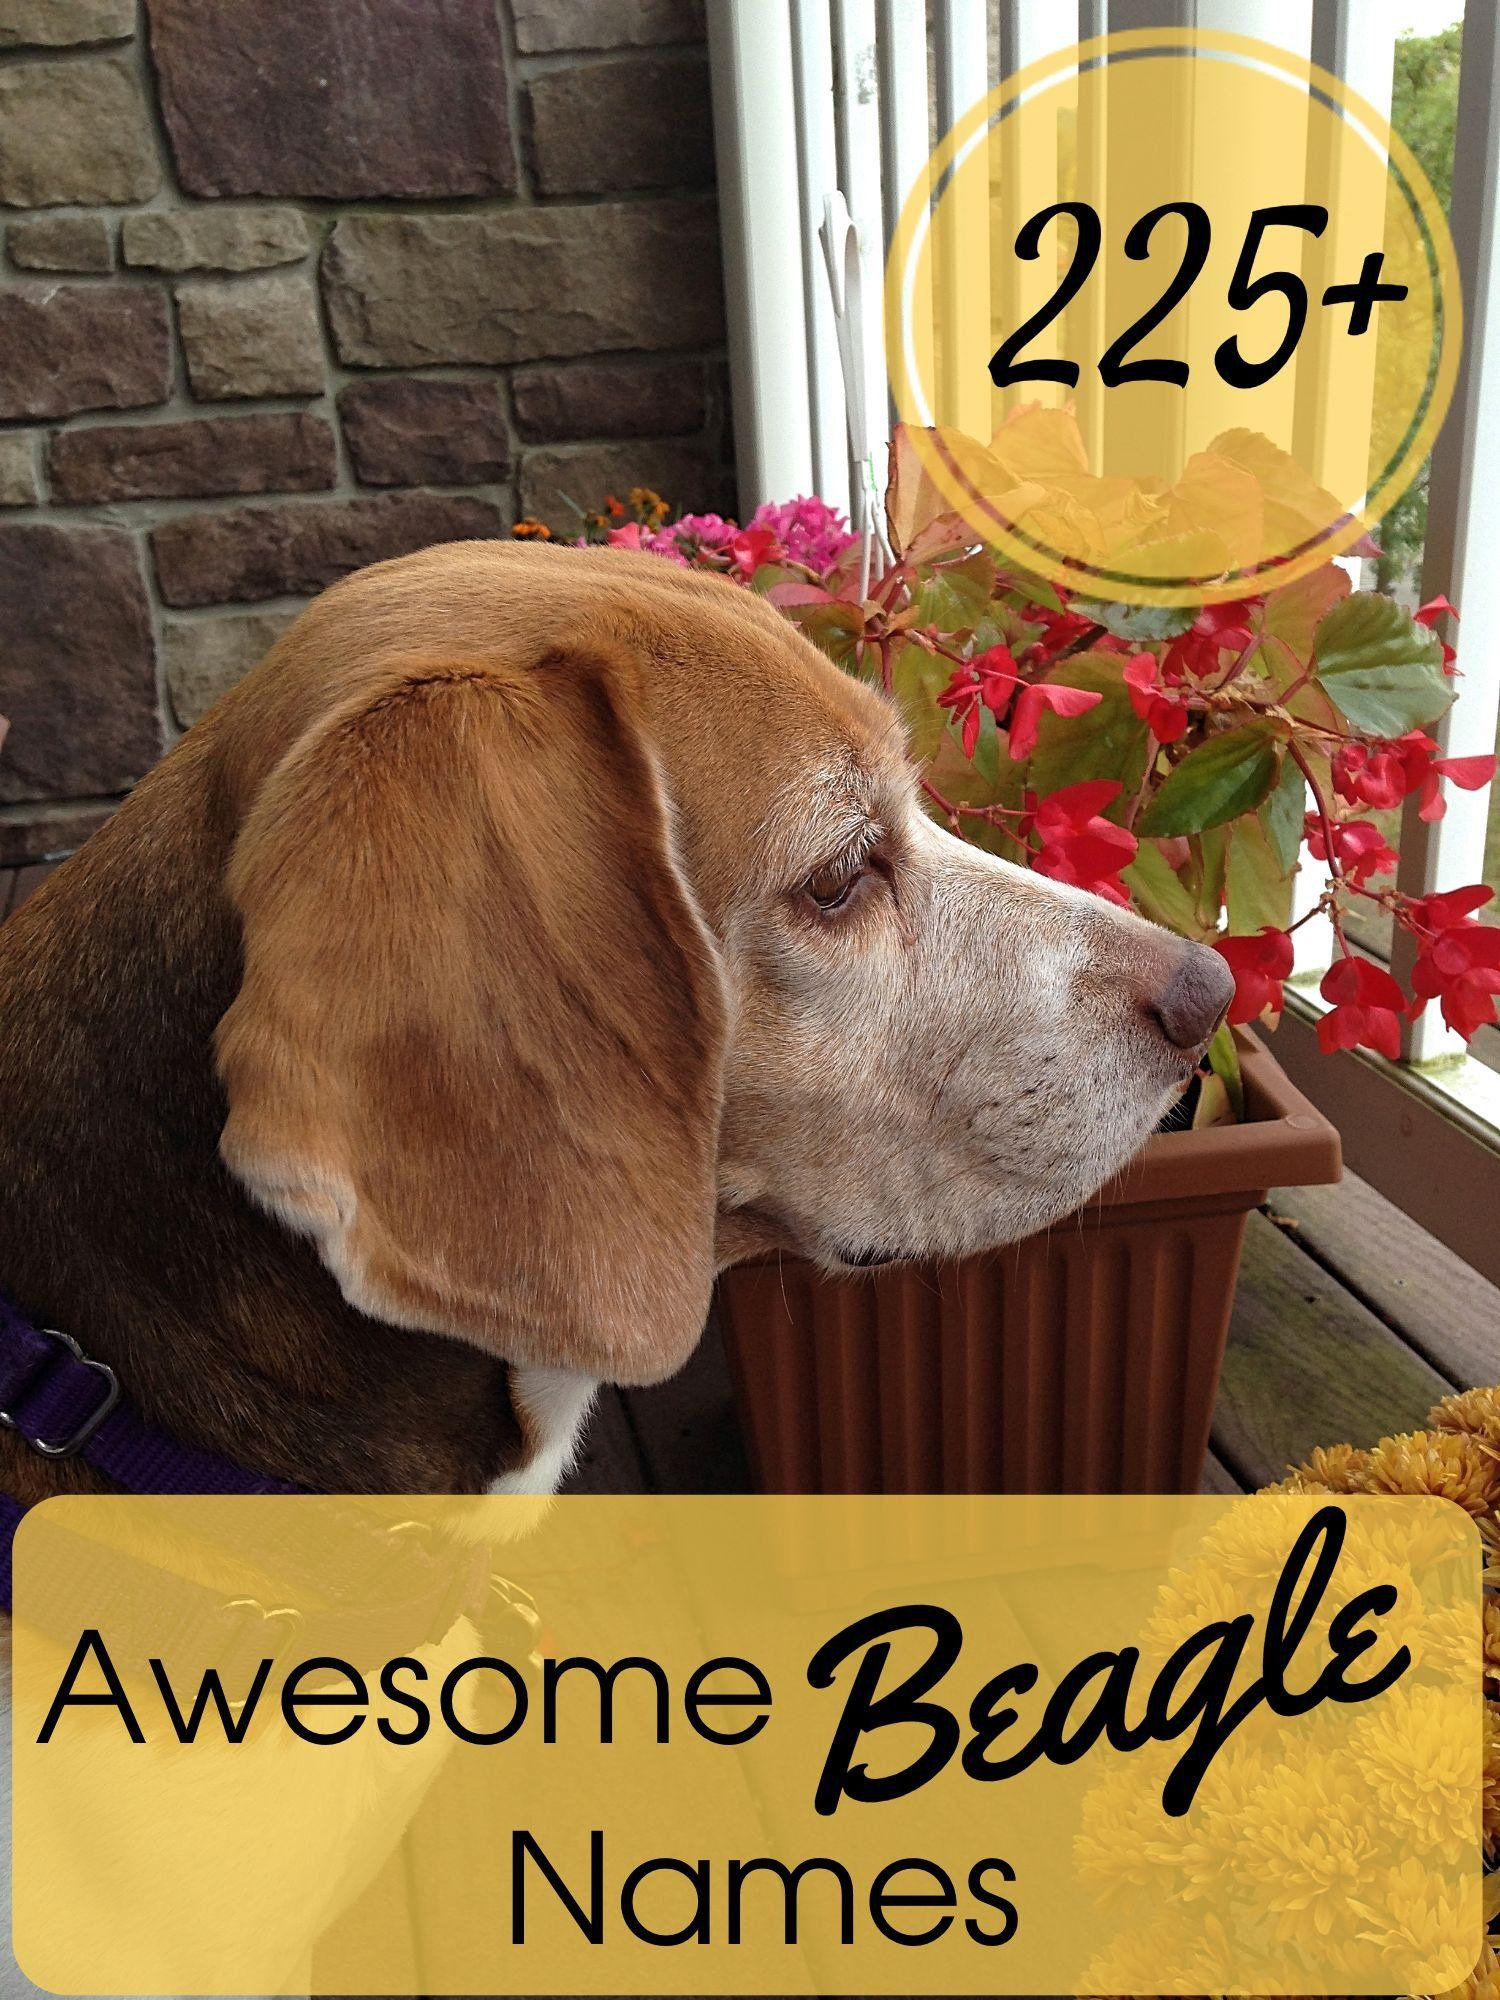 225 Awesome Beagle Names Beagle Names Beagle Beagle Puppy